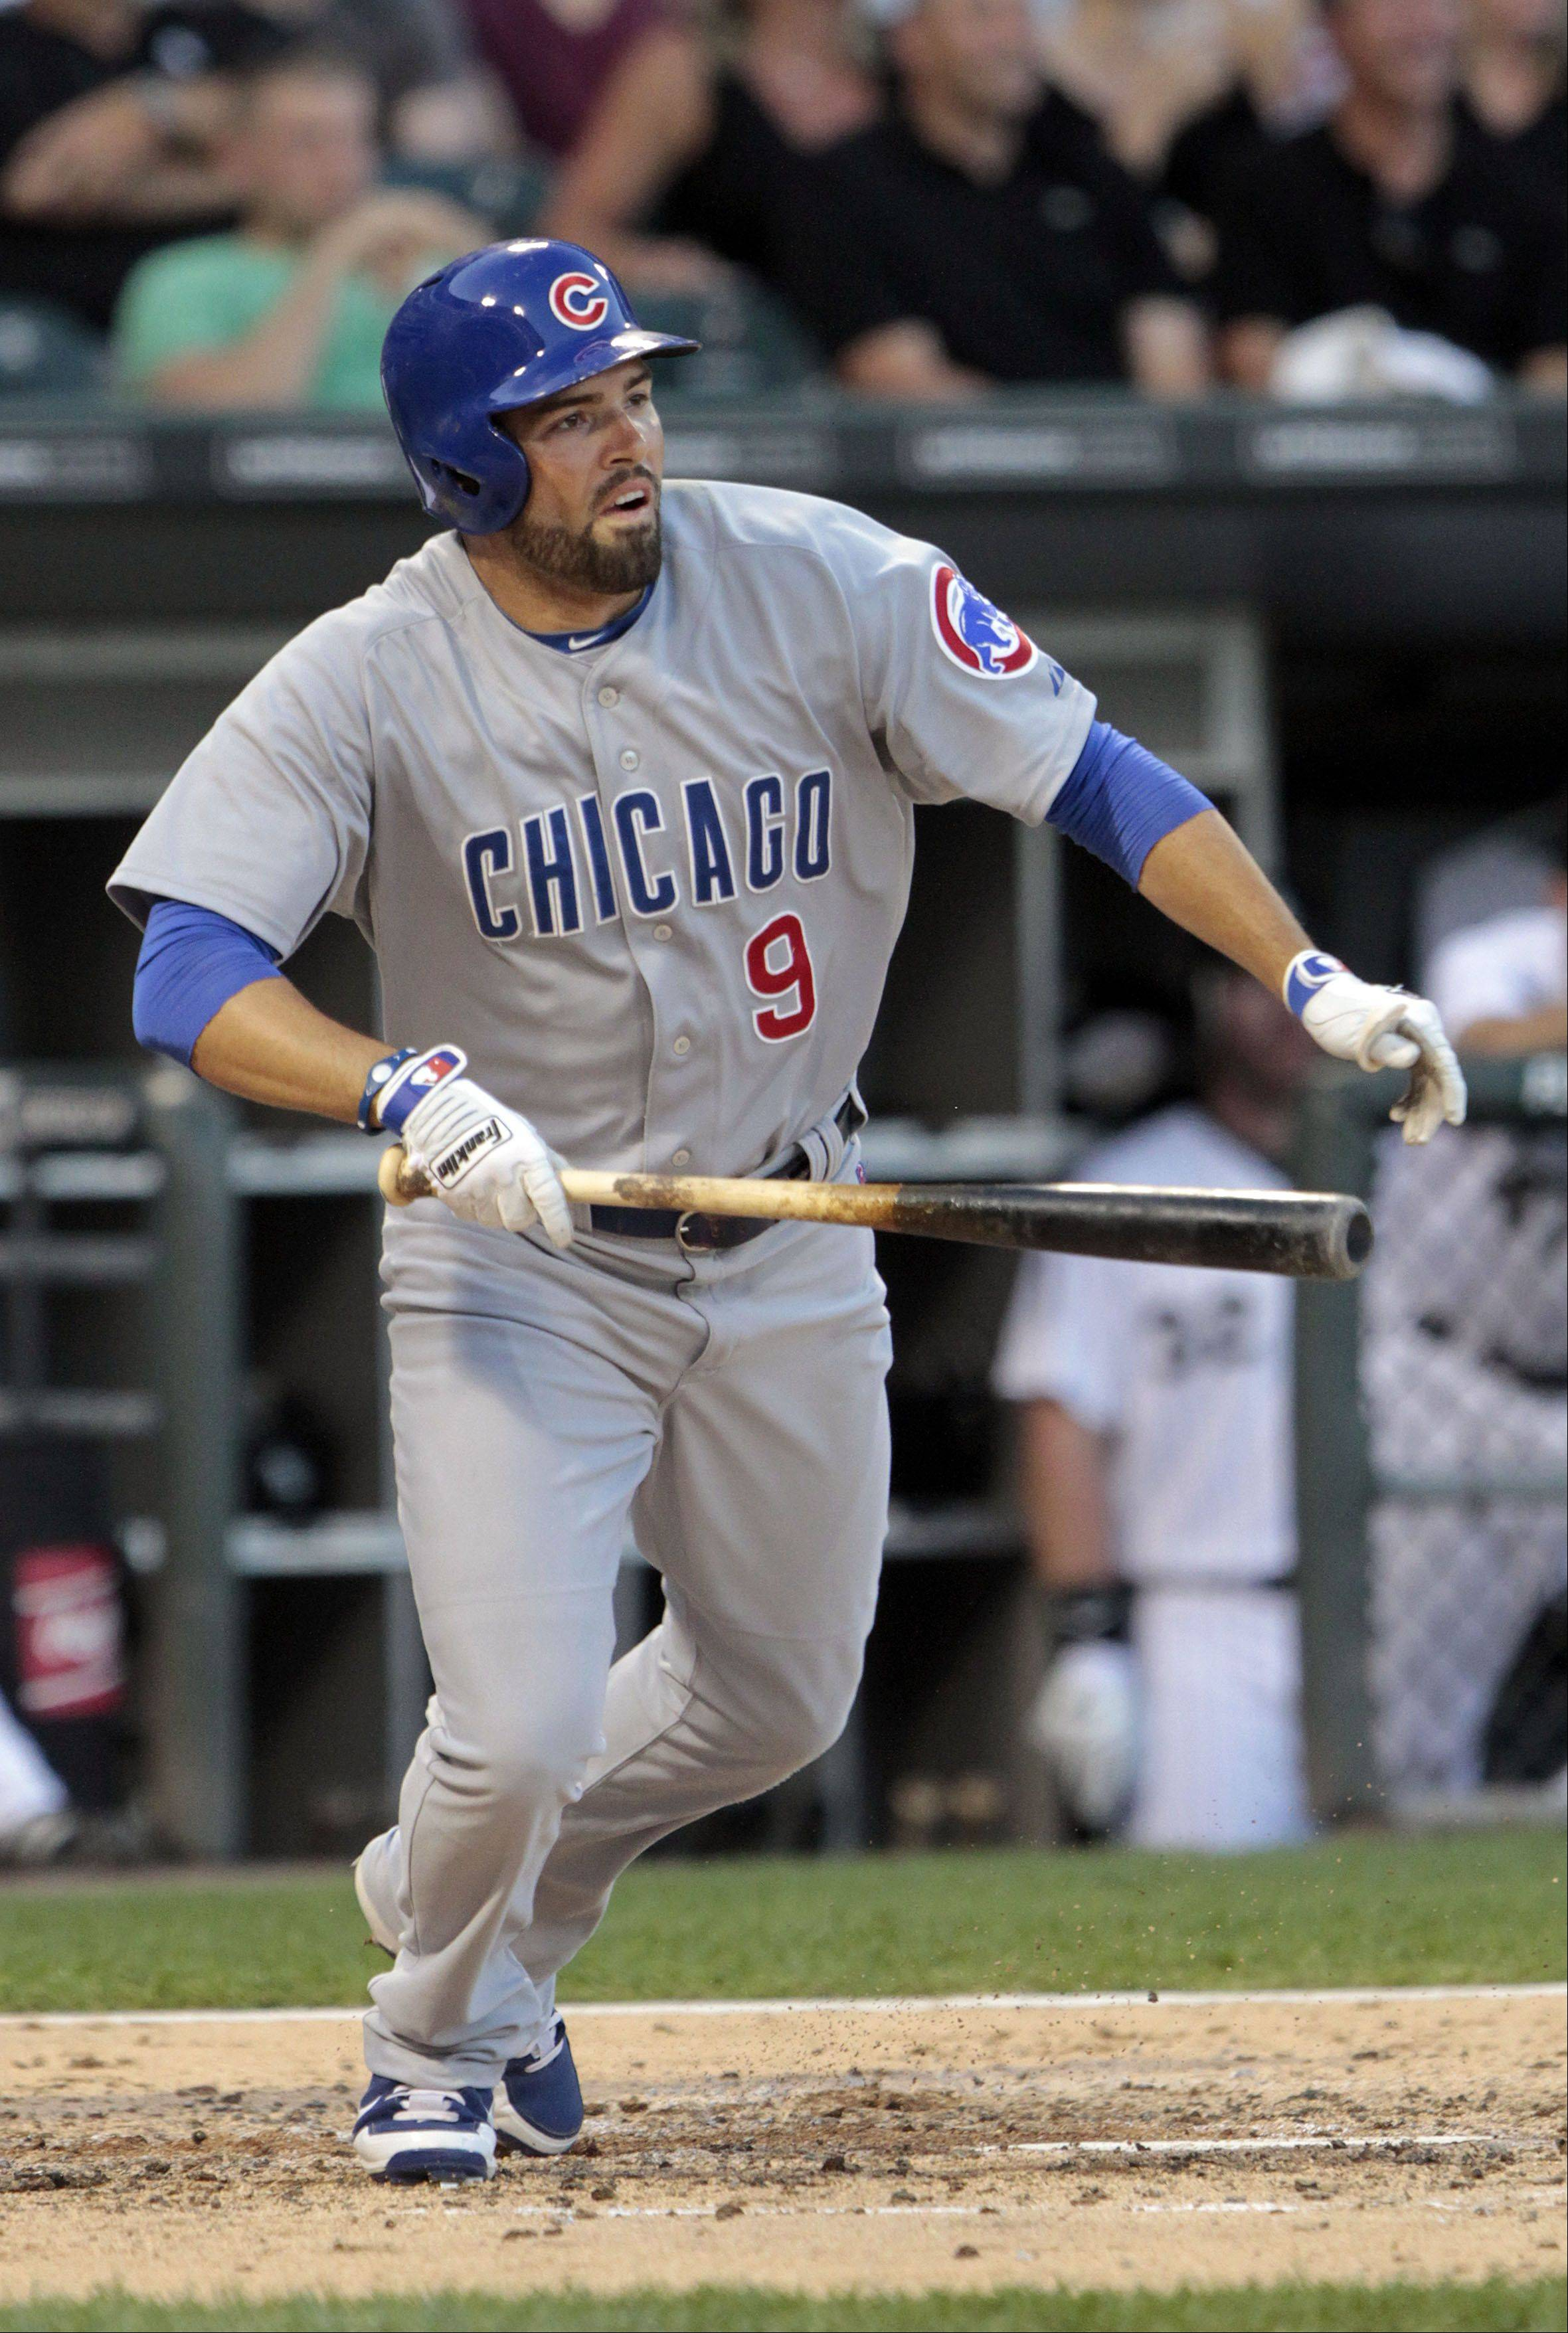 Chicago Cubs' David DeJesus watches his single in the third inning.